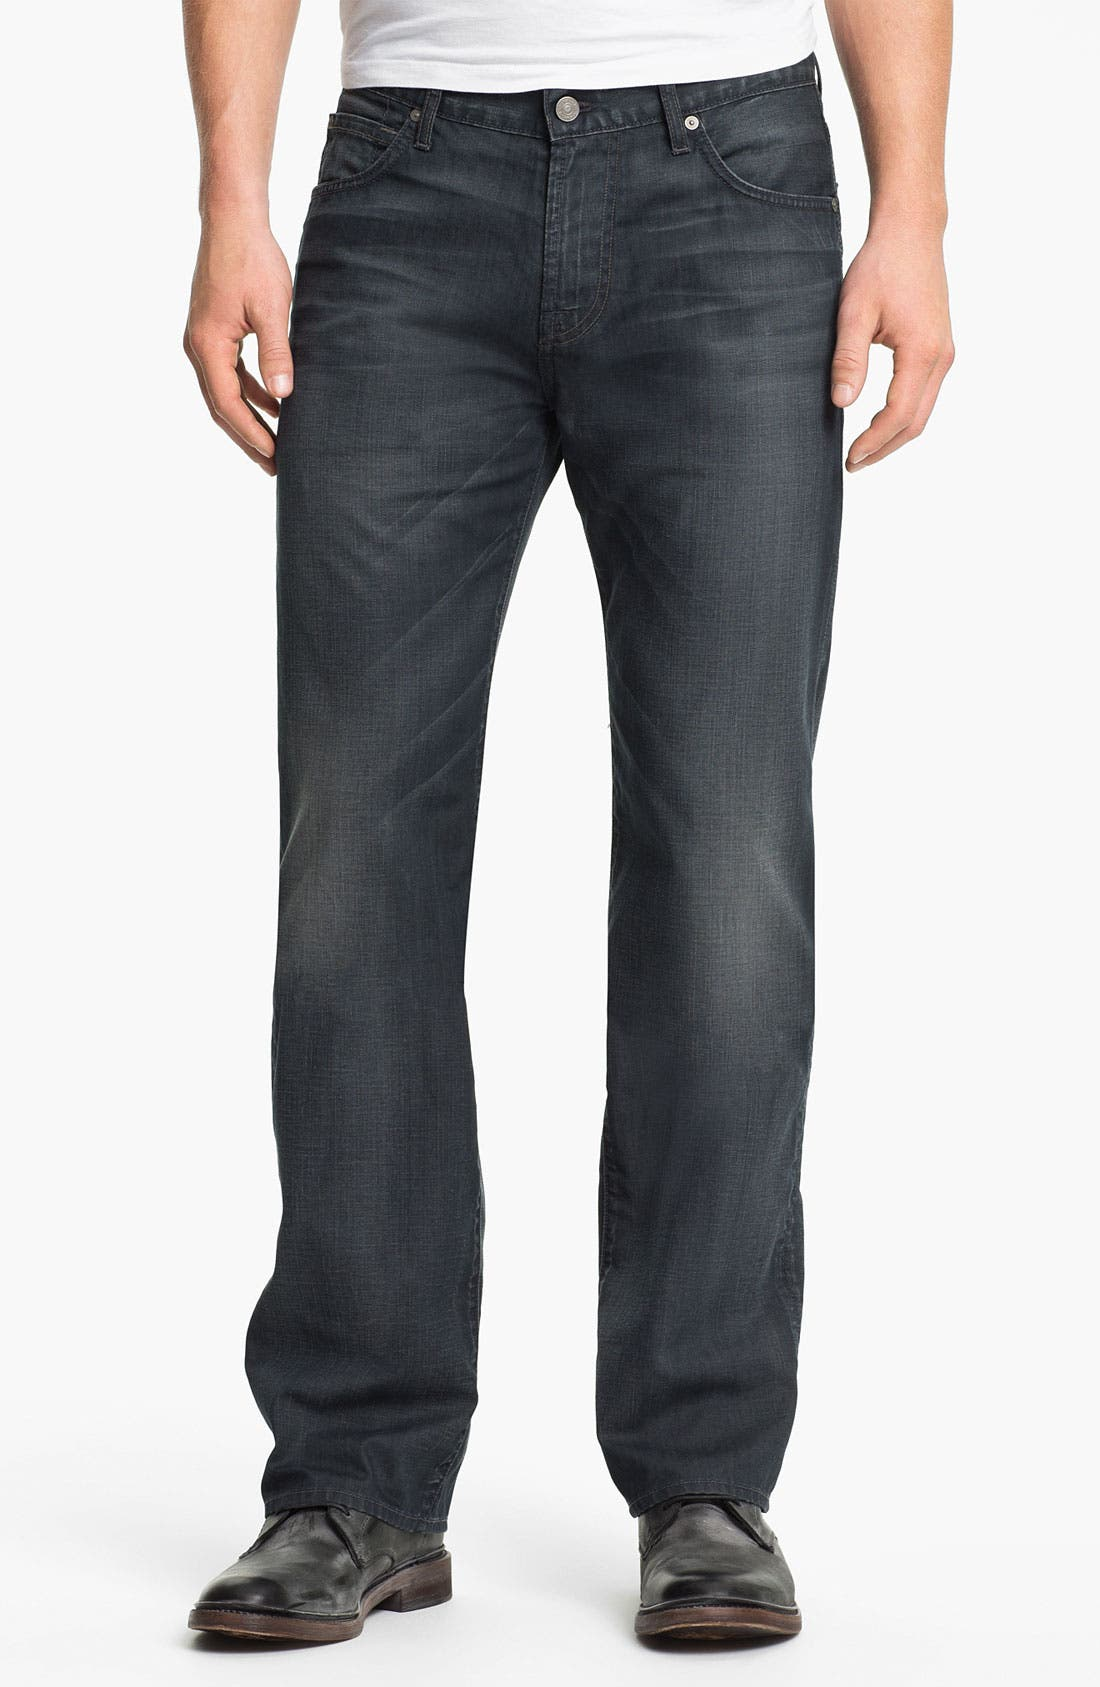 Alternate Image 1 Selected - 7 For All Mankind® 'Austyn' Straight Leg Jeans (New Grey Shade)